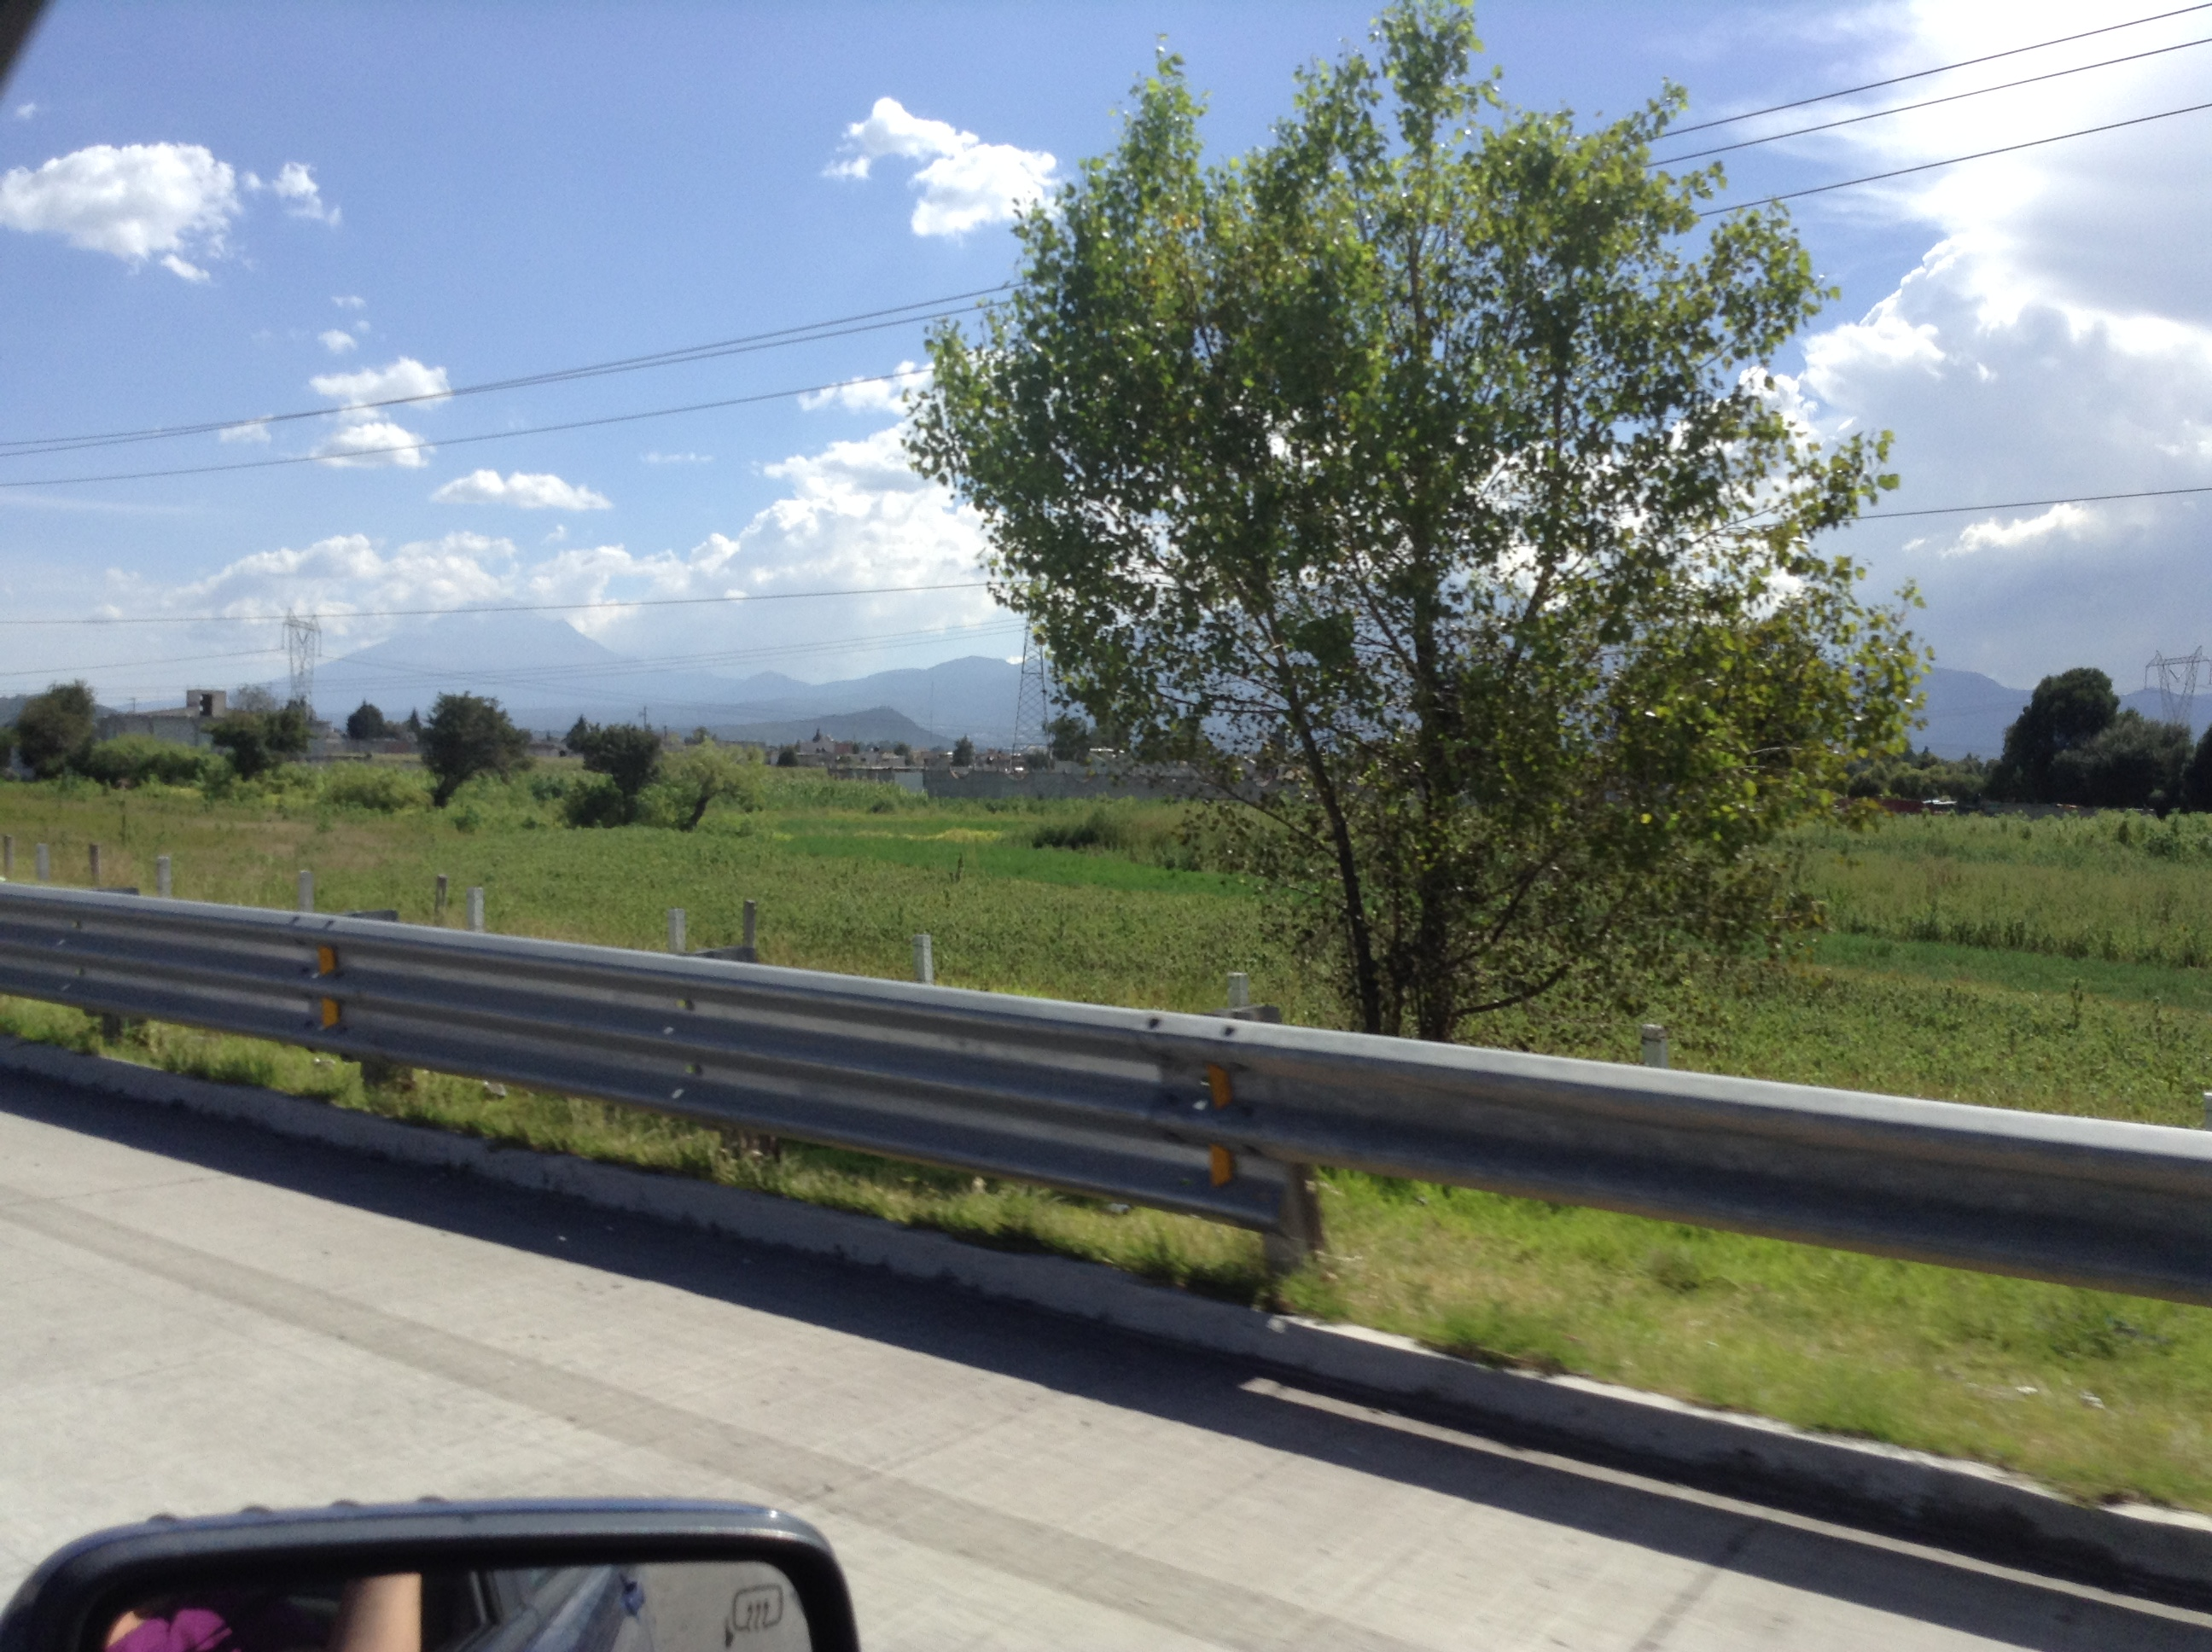 That's Puebla in the distance!